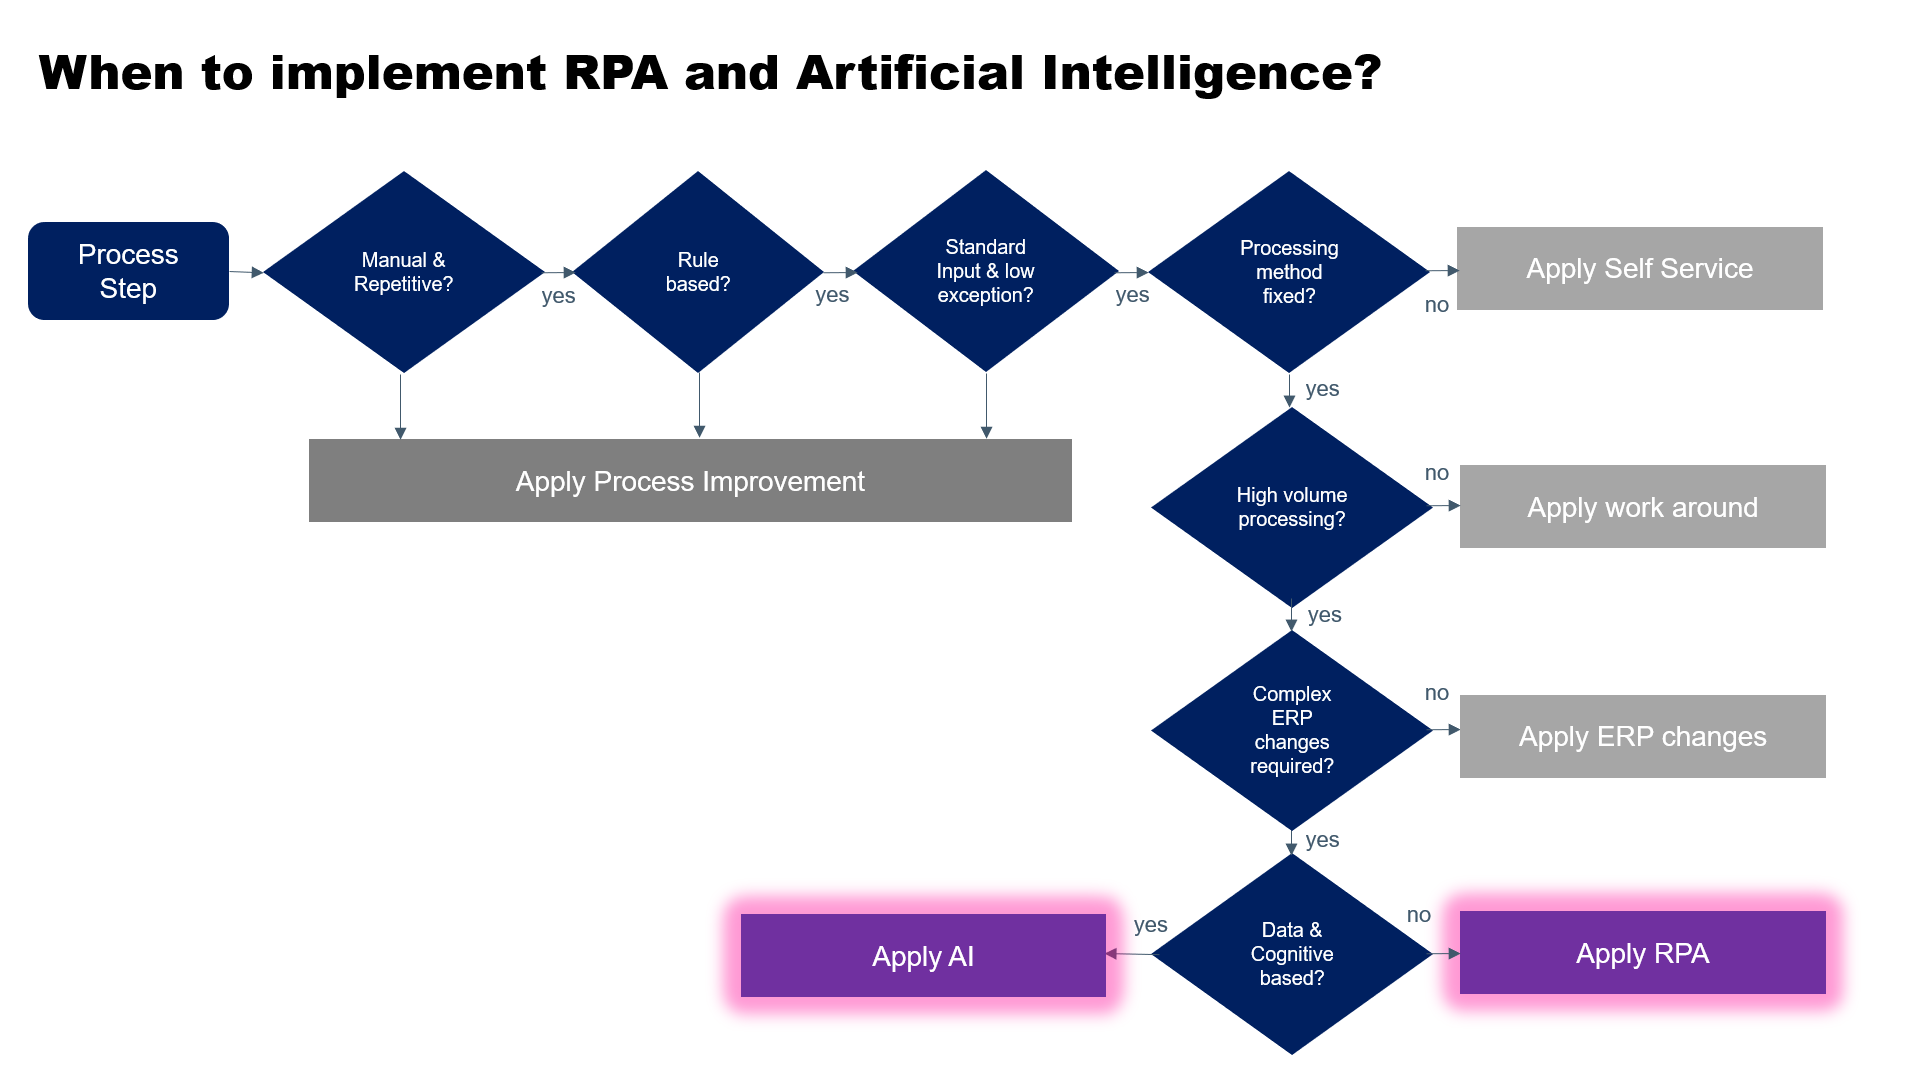 When to apply RPA and AI in HR processes?